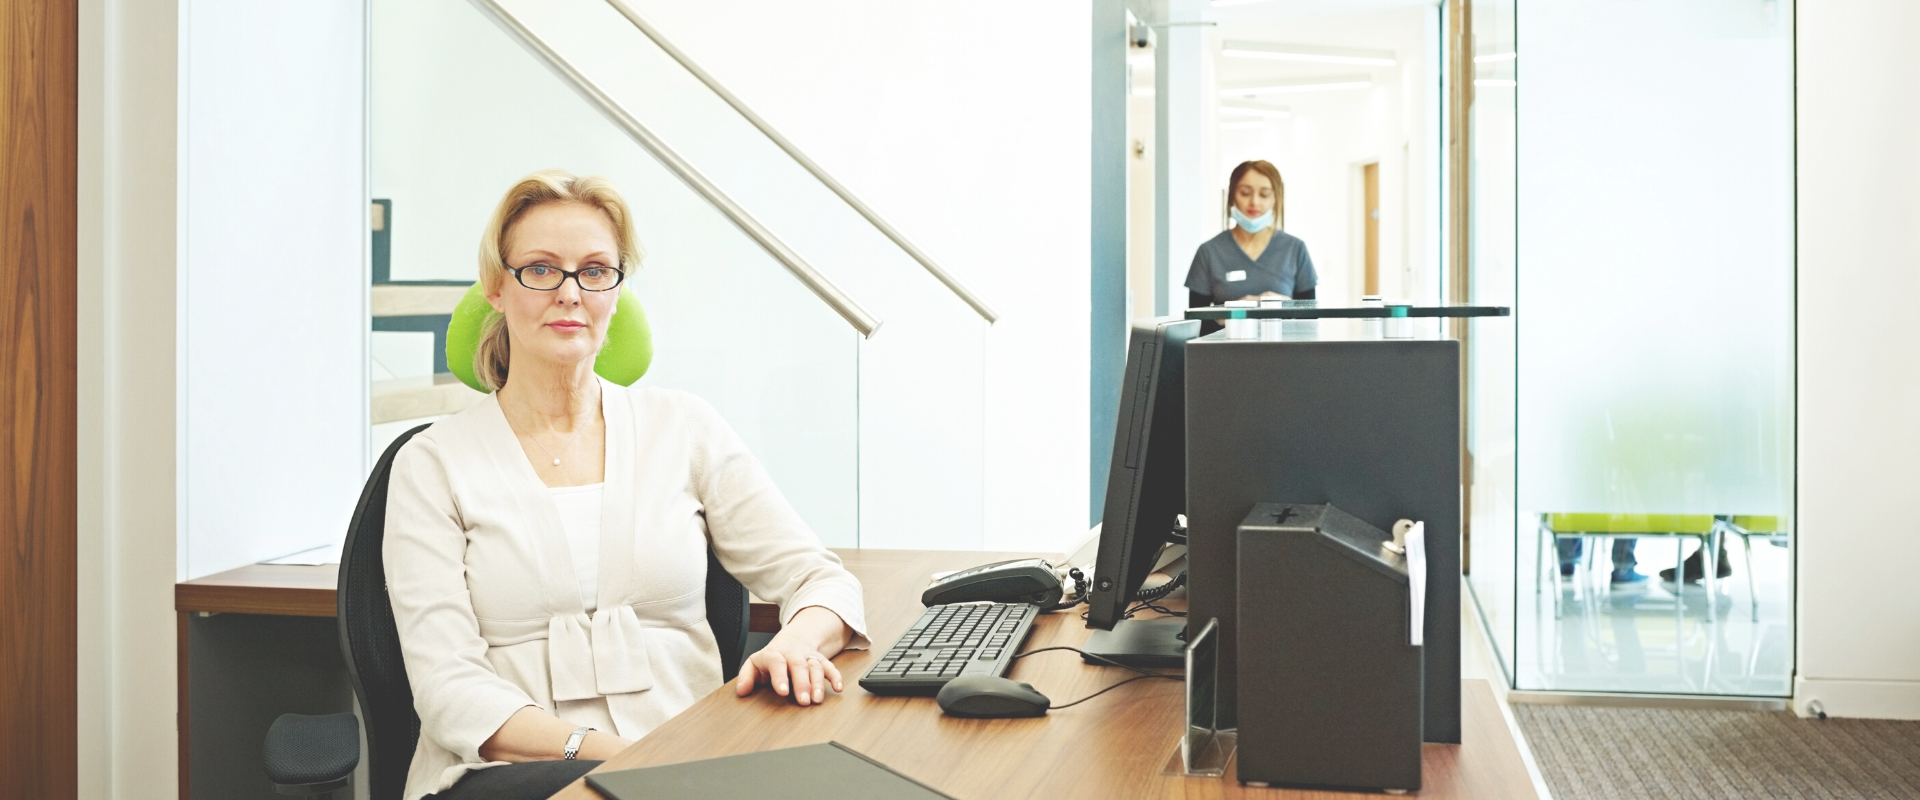 4 Front desk protocols for cancellations